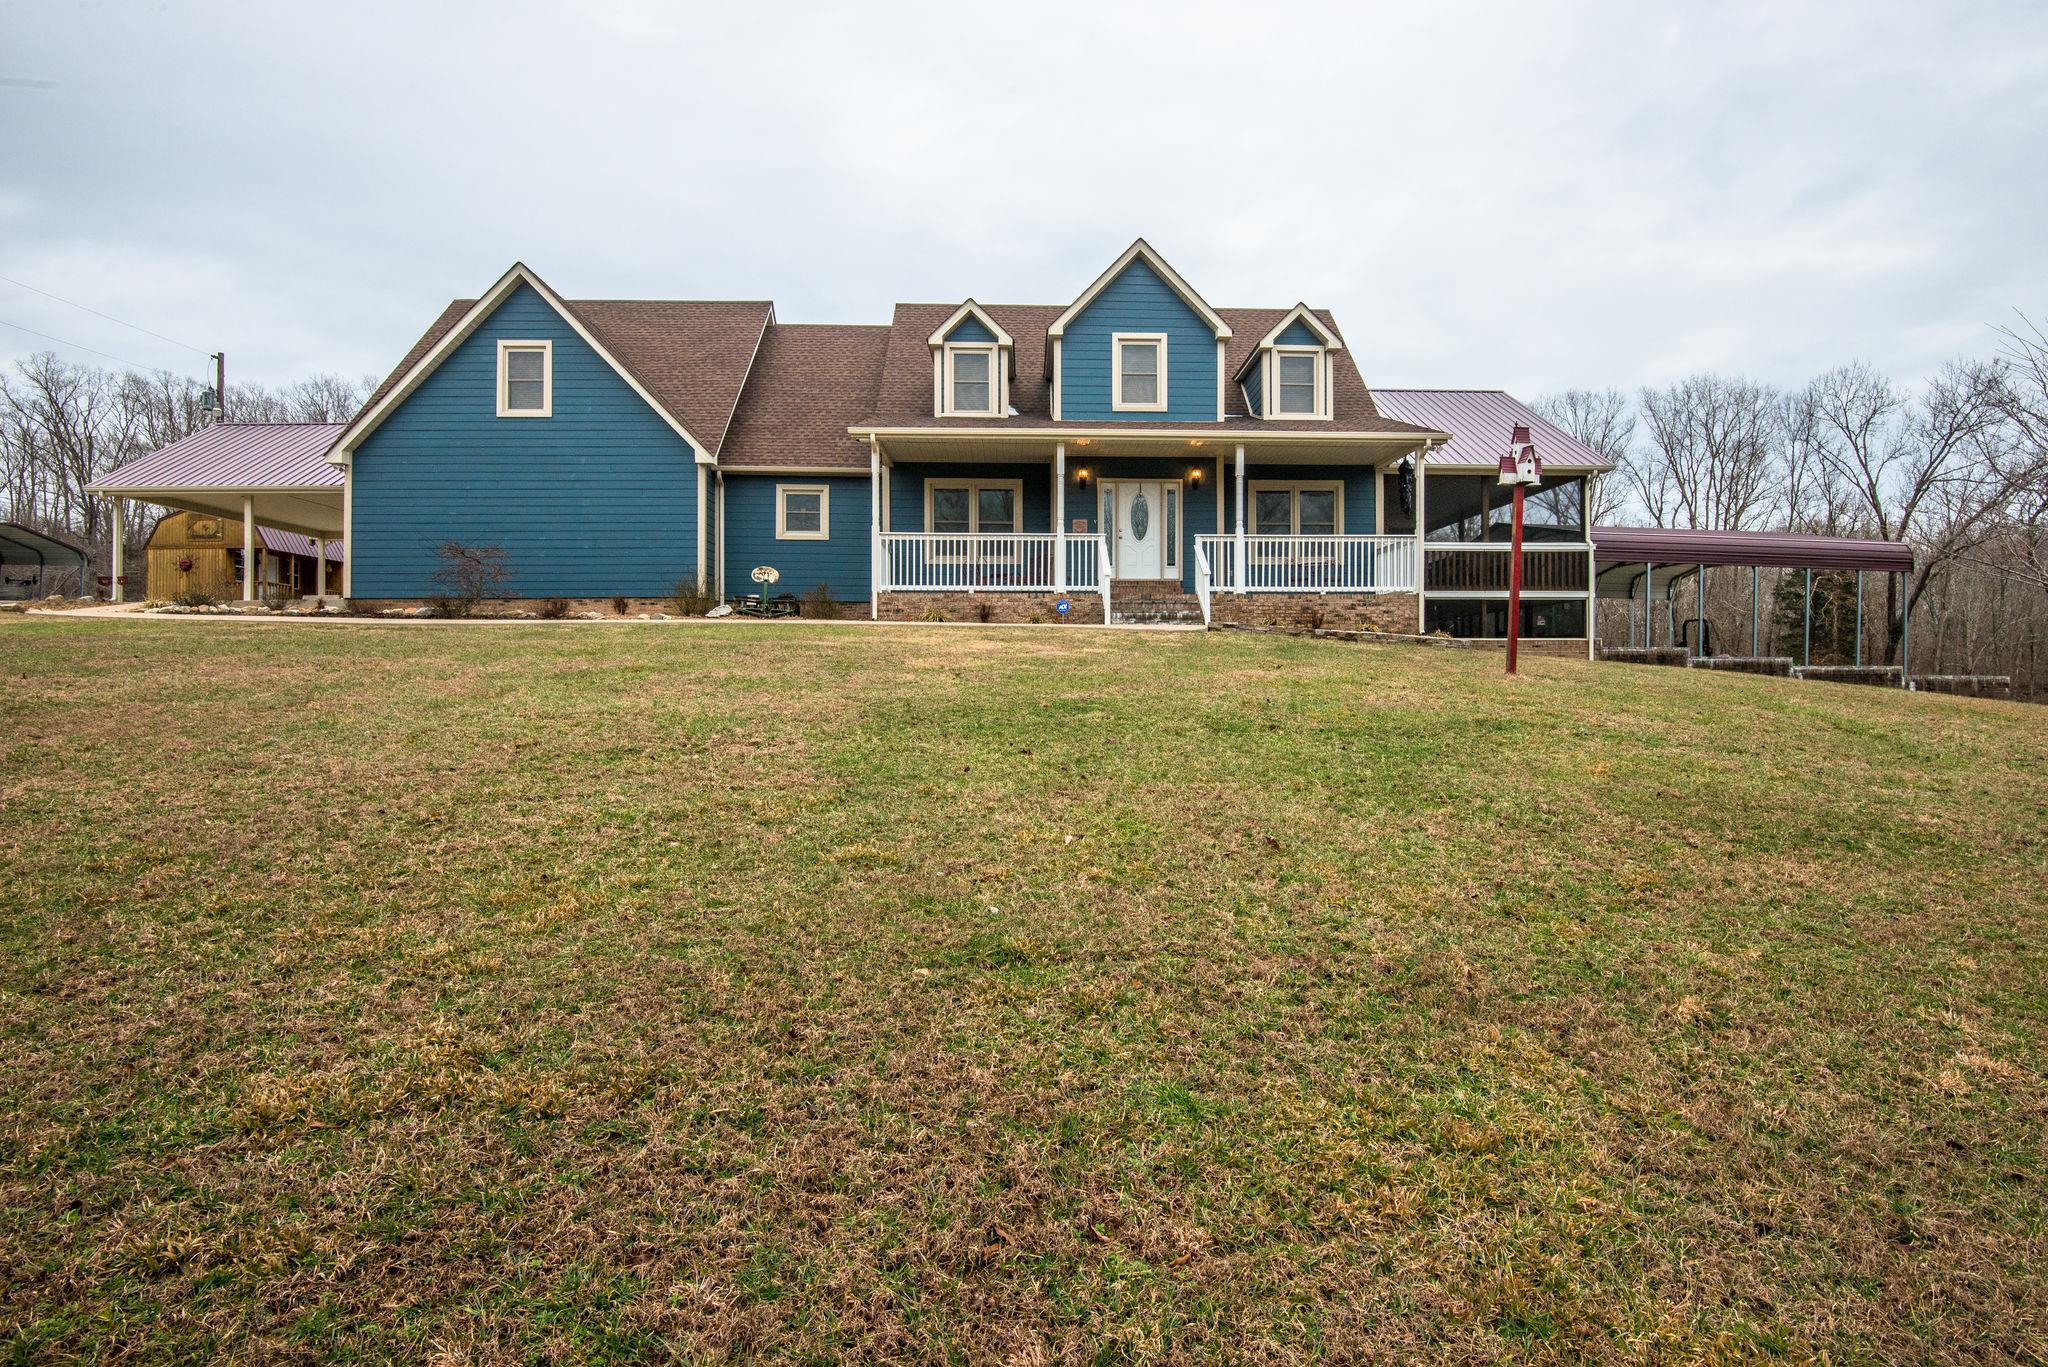 378 Tummins Rd, MC EWEN, TN 37101 - MC EWEN, TN real estate listing